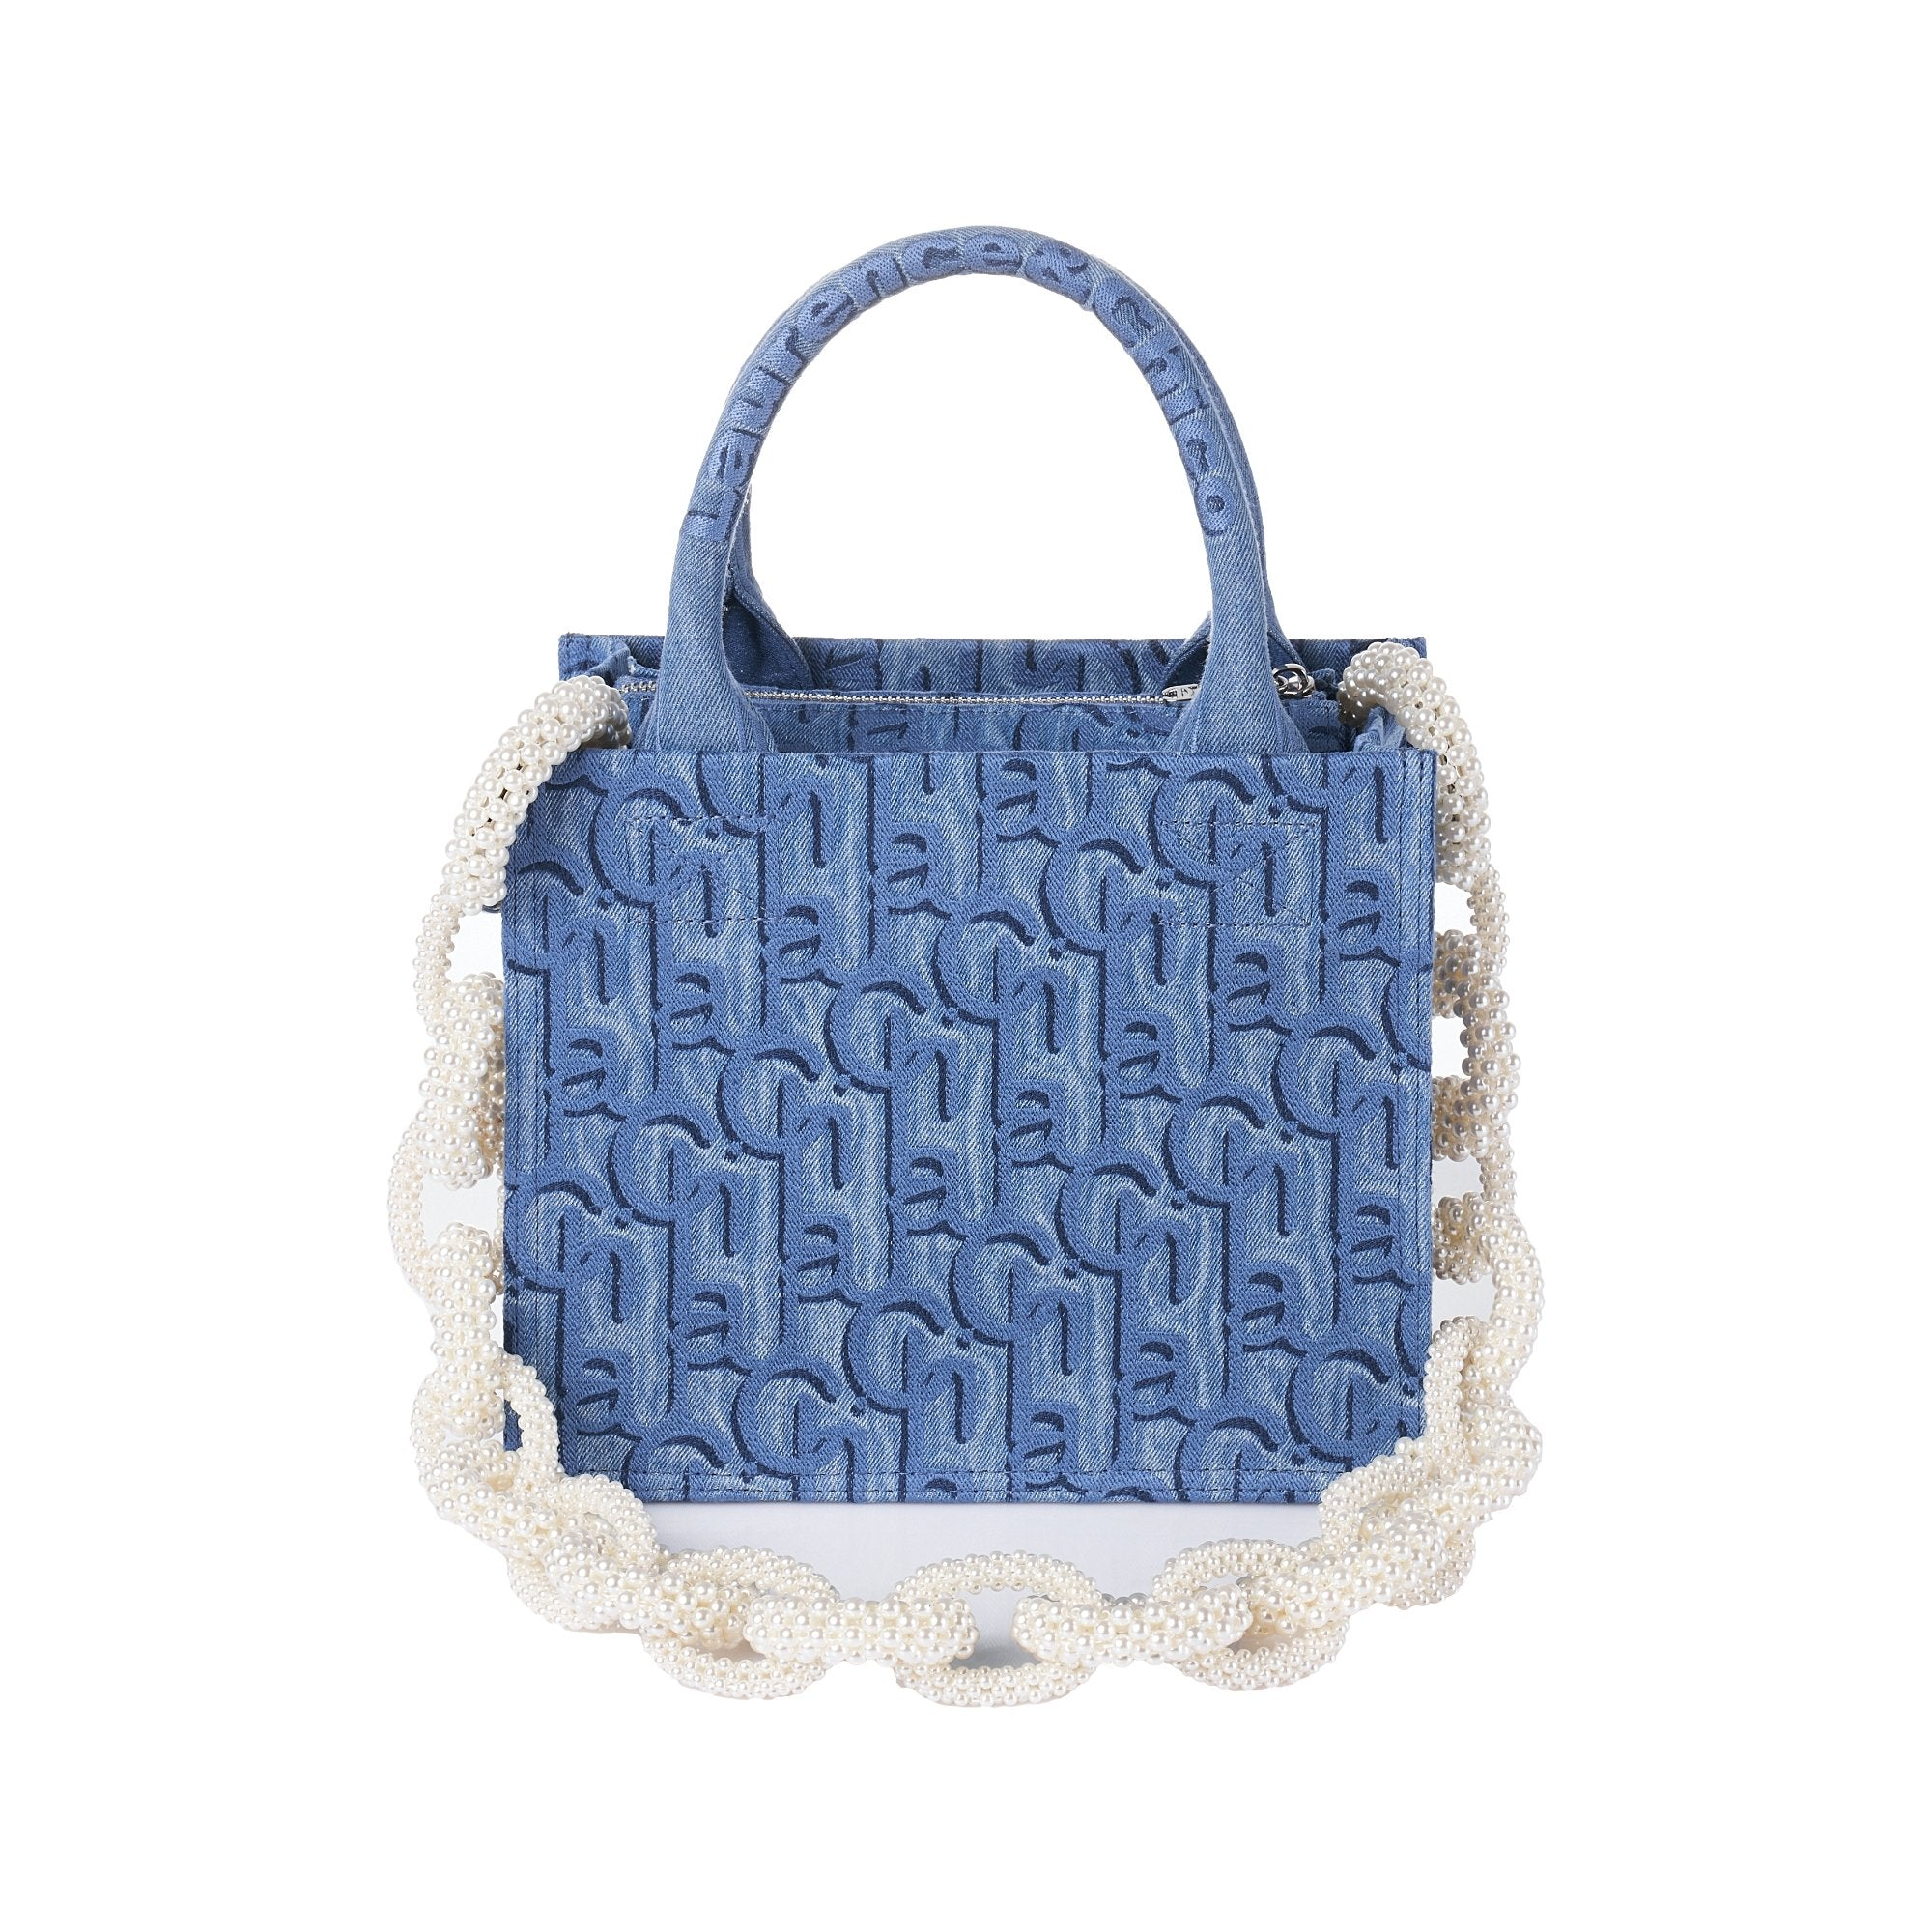 Laurence & Chico Laulau Chichi Jacquard Small Square Tote Light Blue | MADA IN CHINA